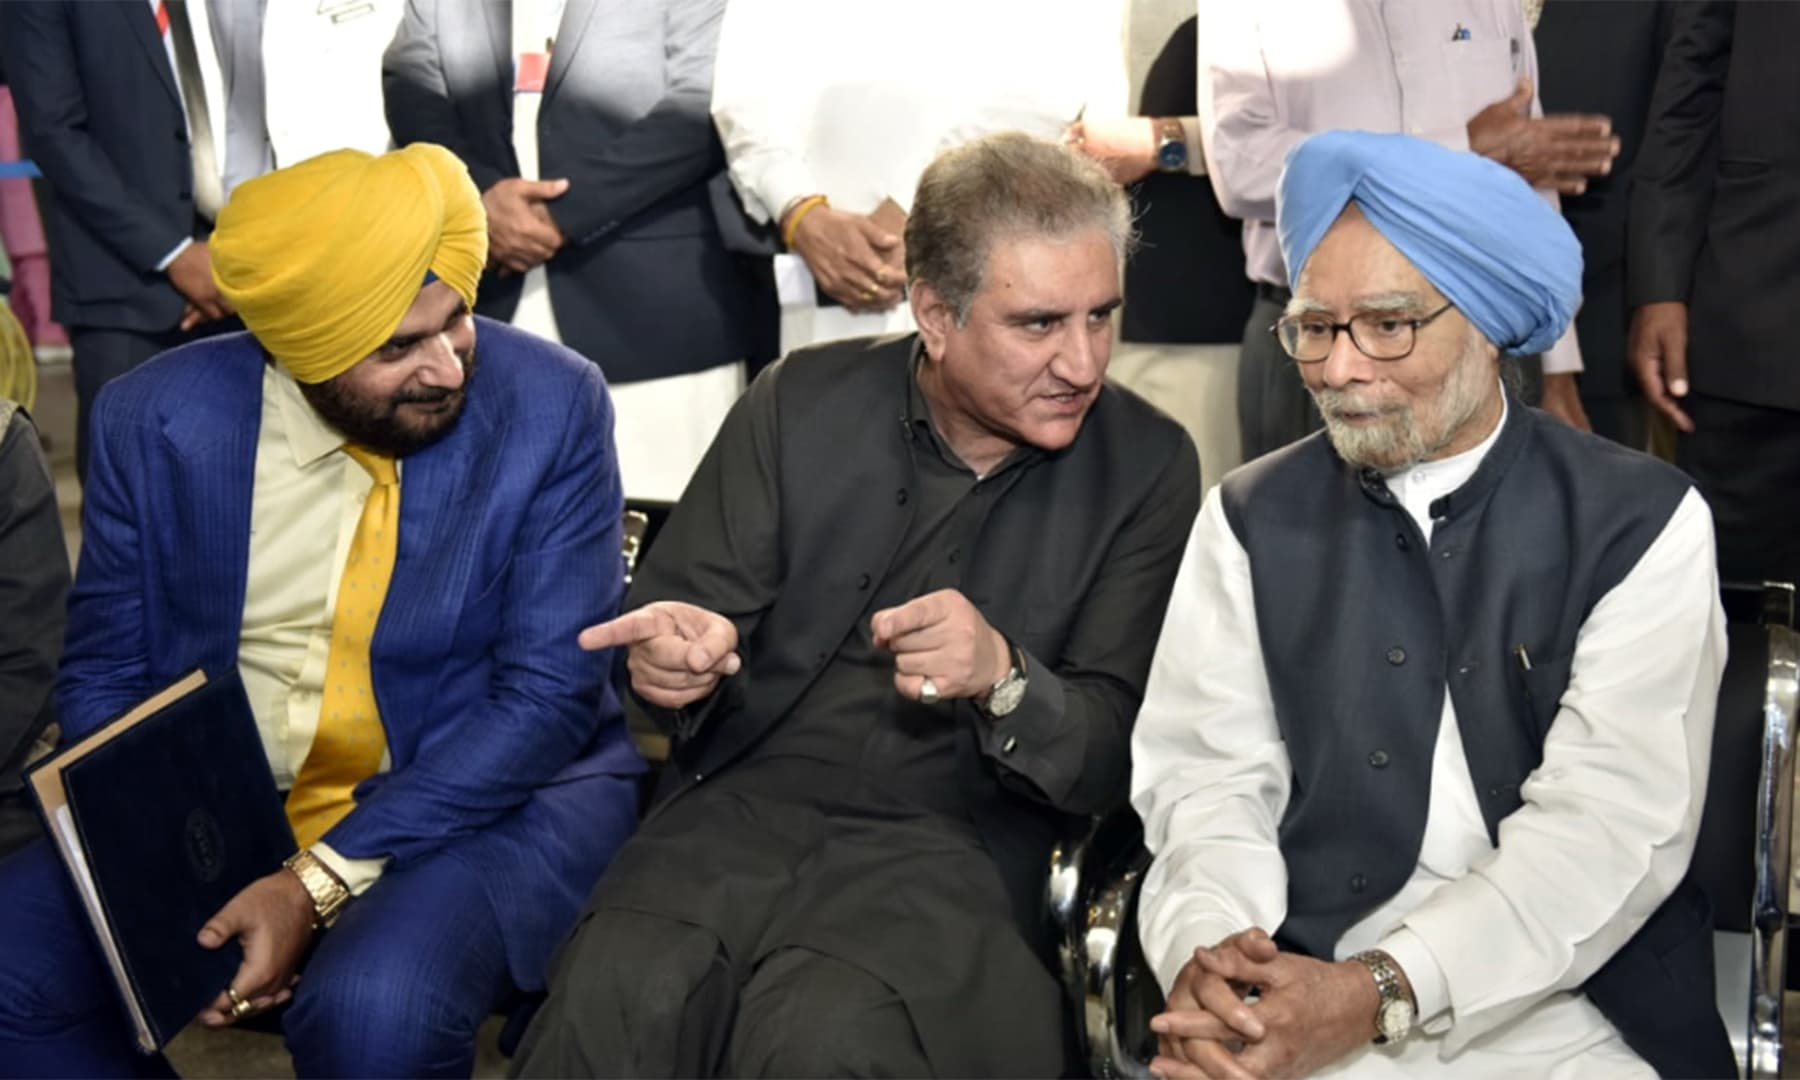 Shah Mahmood Qureshi speaking with former Indian premier Manmohan Singh and cricketer-turned-politician Navjot Singh Sidhu. — Foreign Office